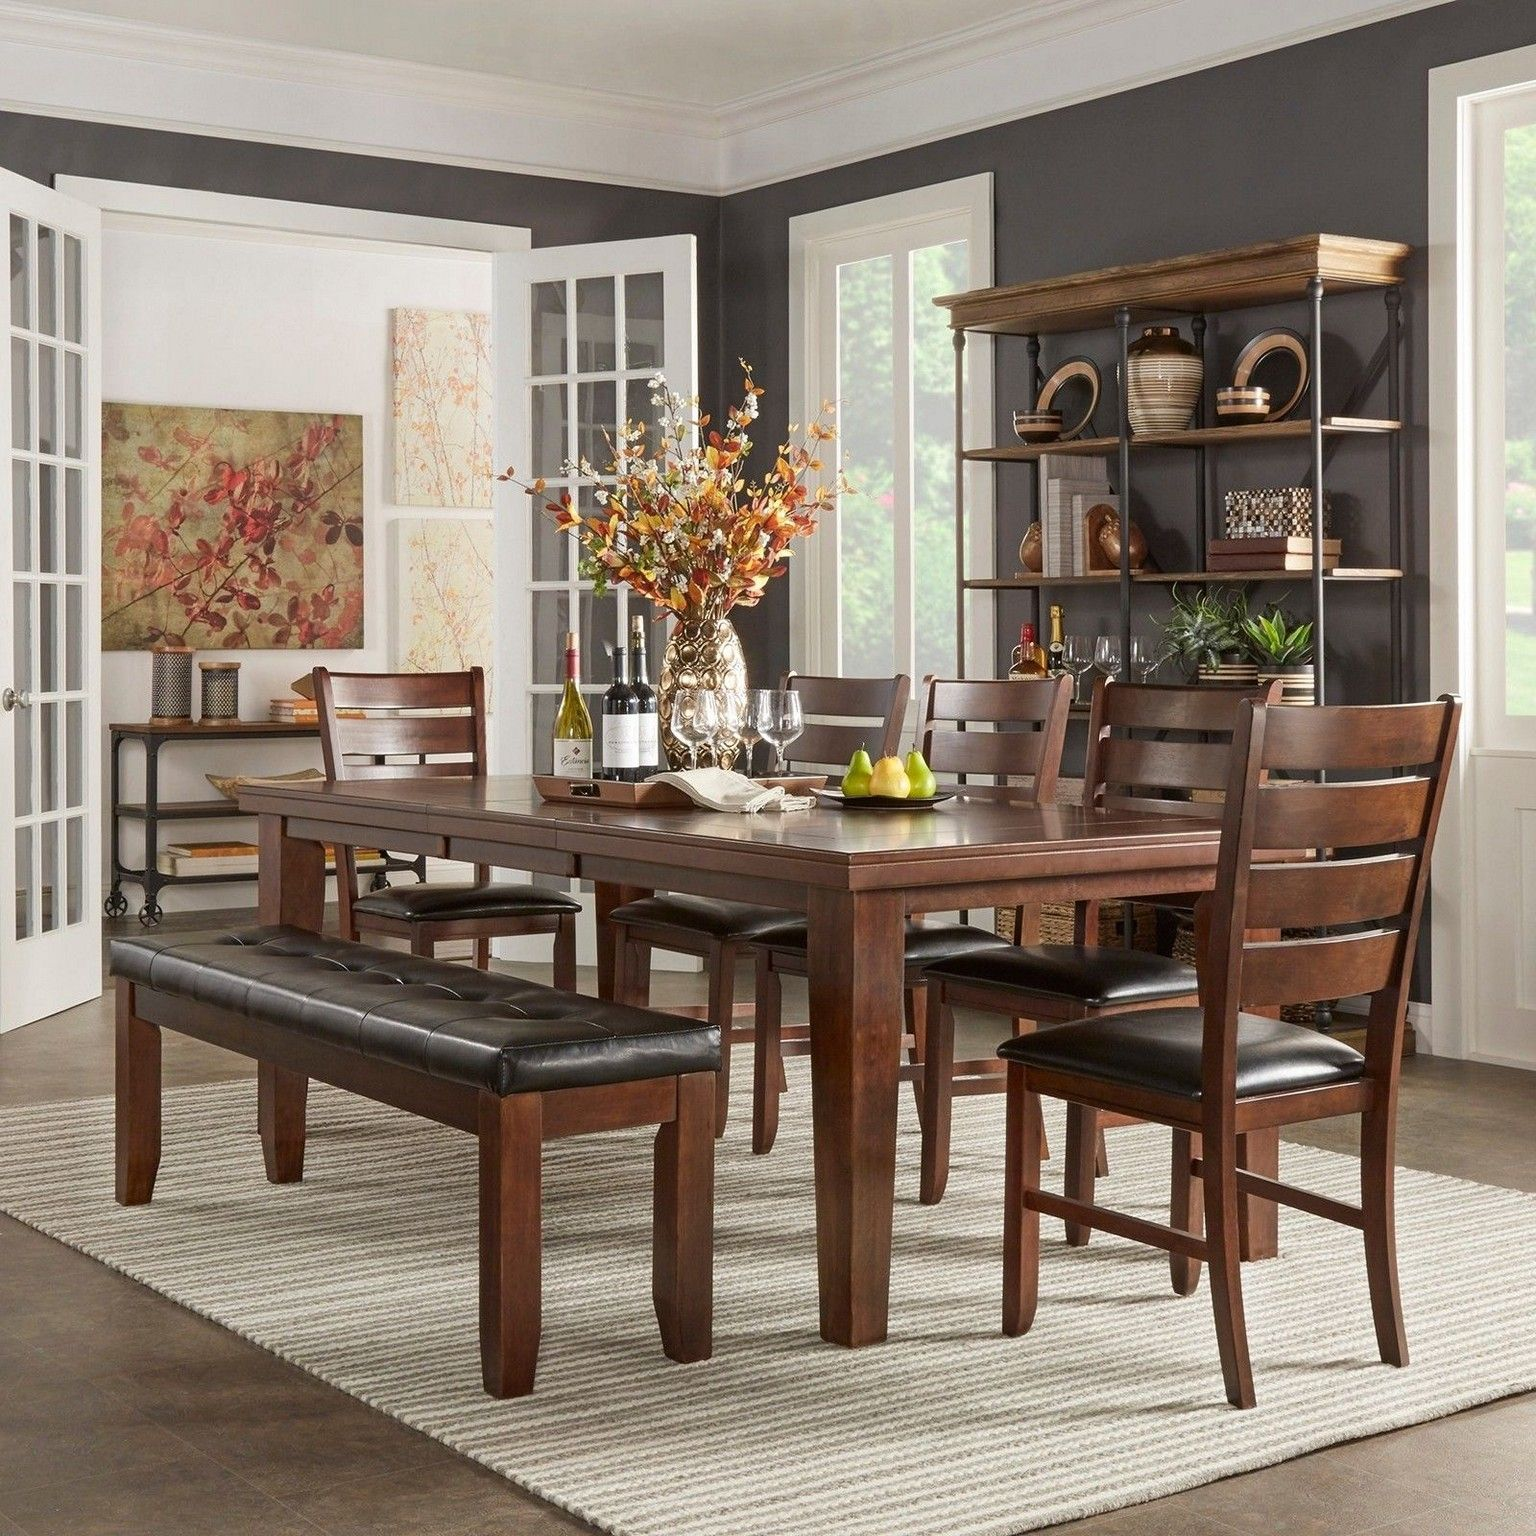 a black yellow dining in large room with hutch ideas cabinets architects china visbeen traditional and design hutches delightful